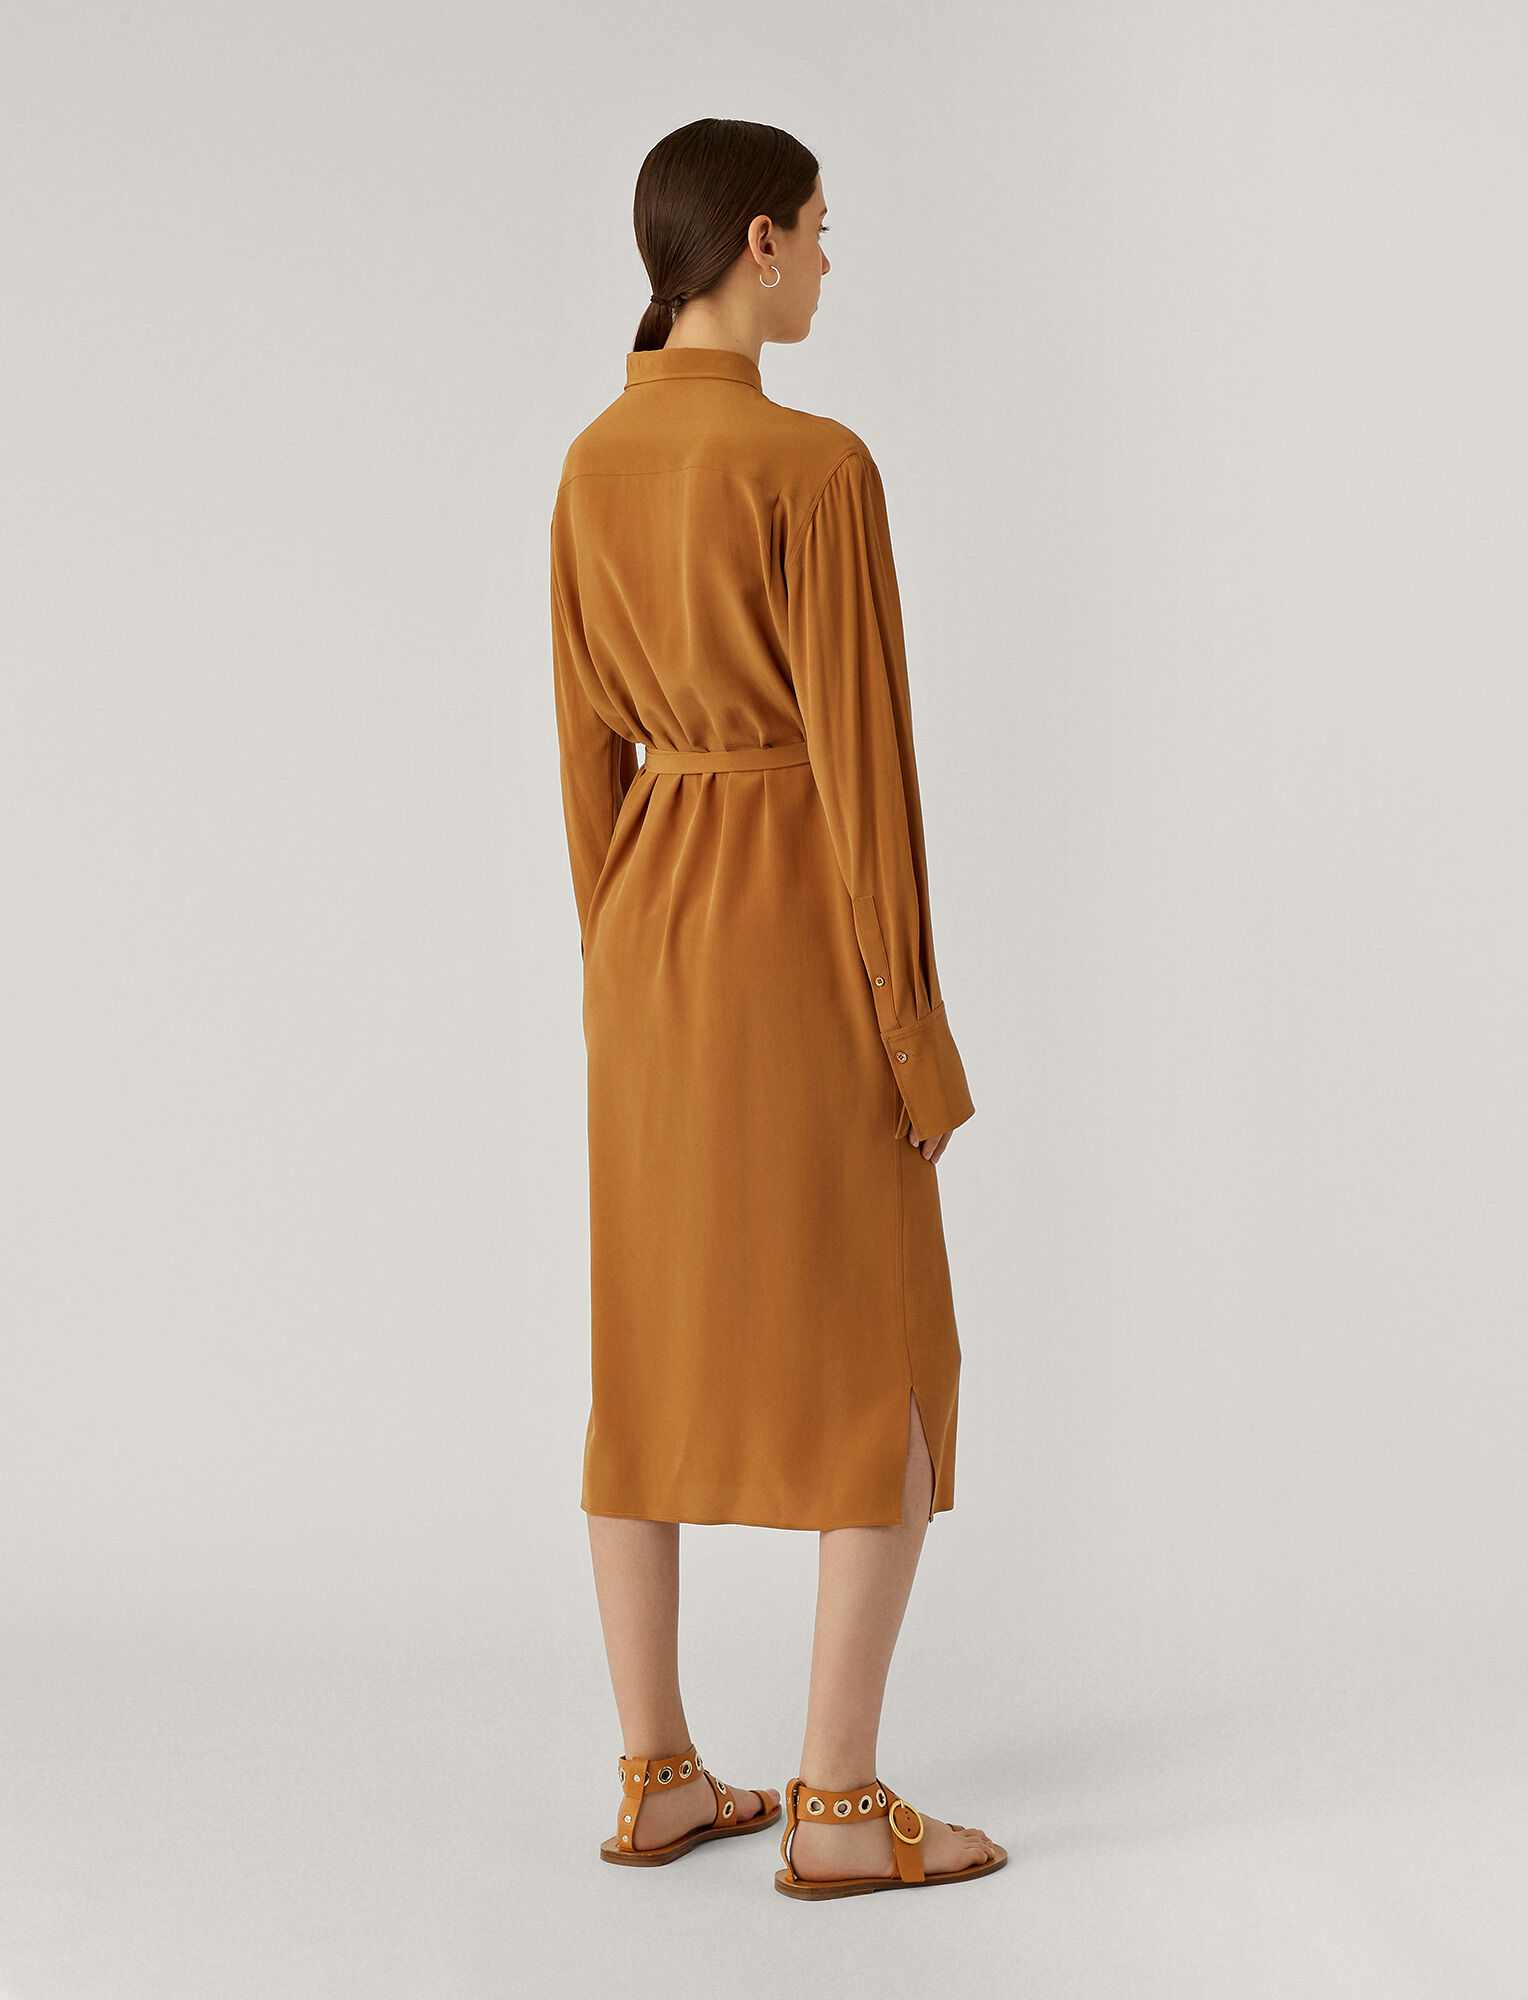 Joseph, Dold Crepe De Chine Dress, in Cognac